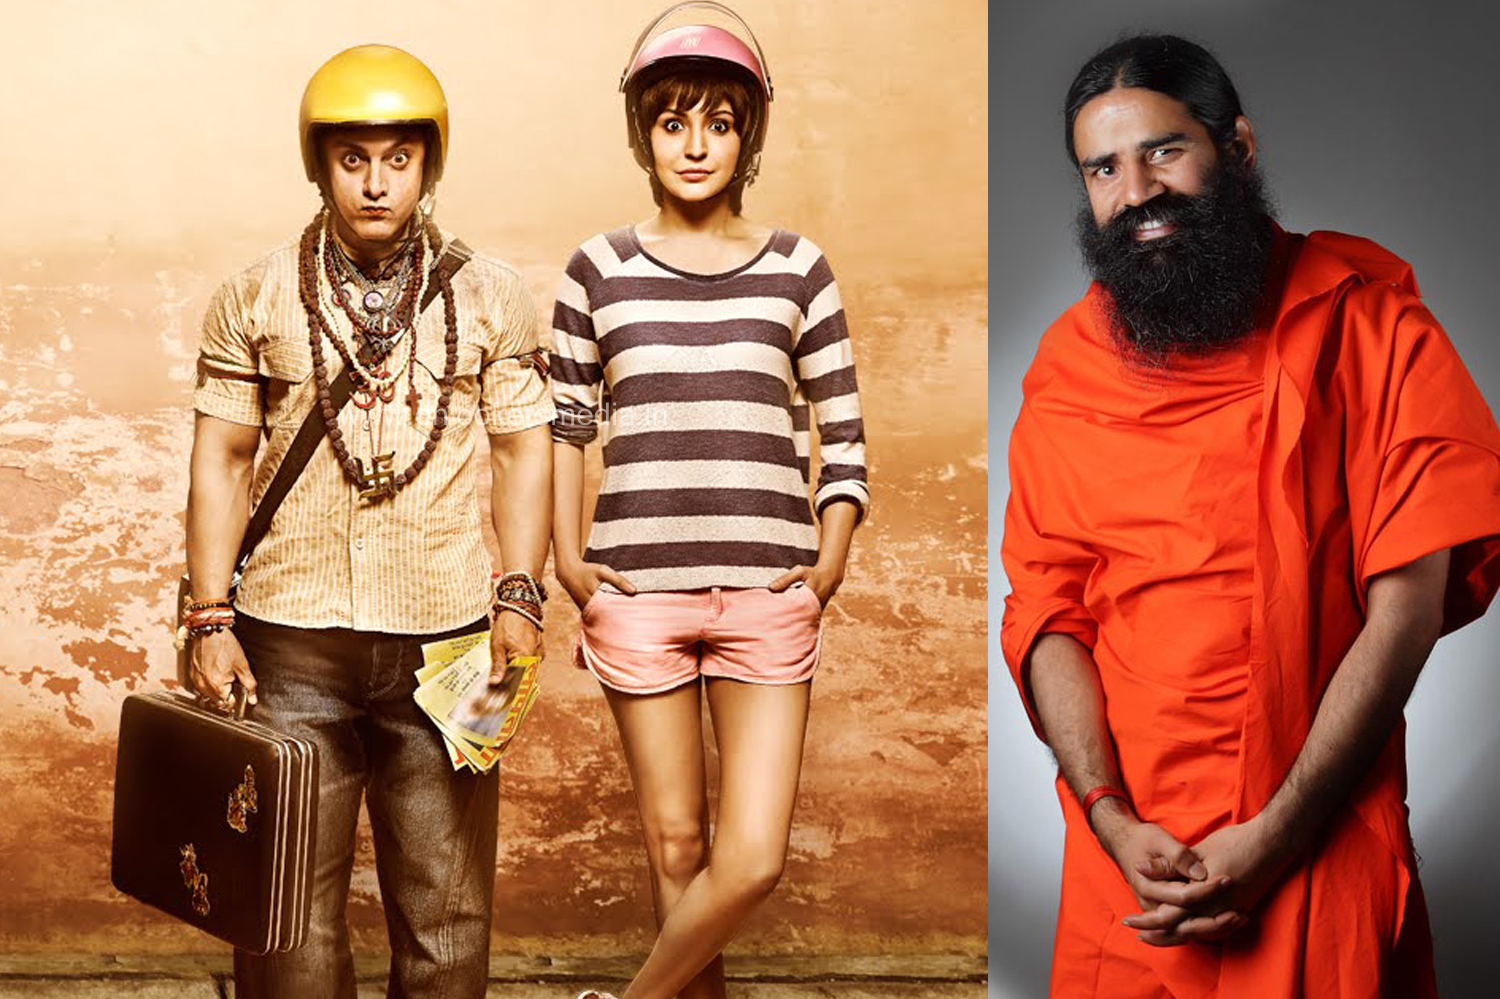 Baba Ramdev, the new WRONG NUMBER for online medias-Boycott PK-Aamir Khan-Onlookers Media